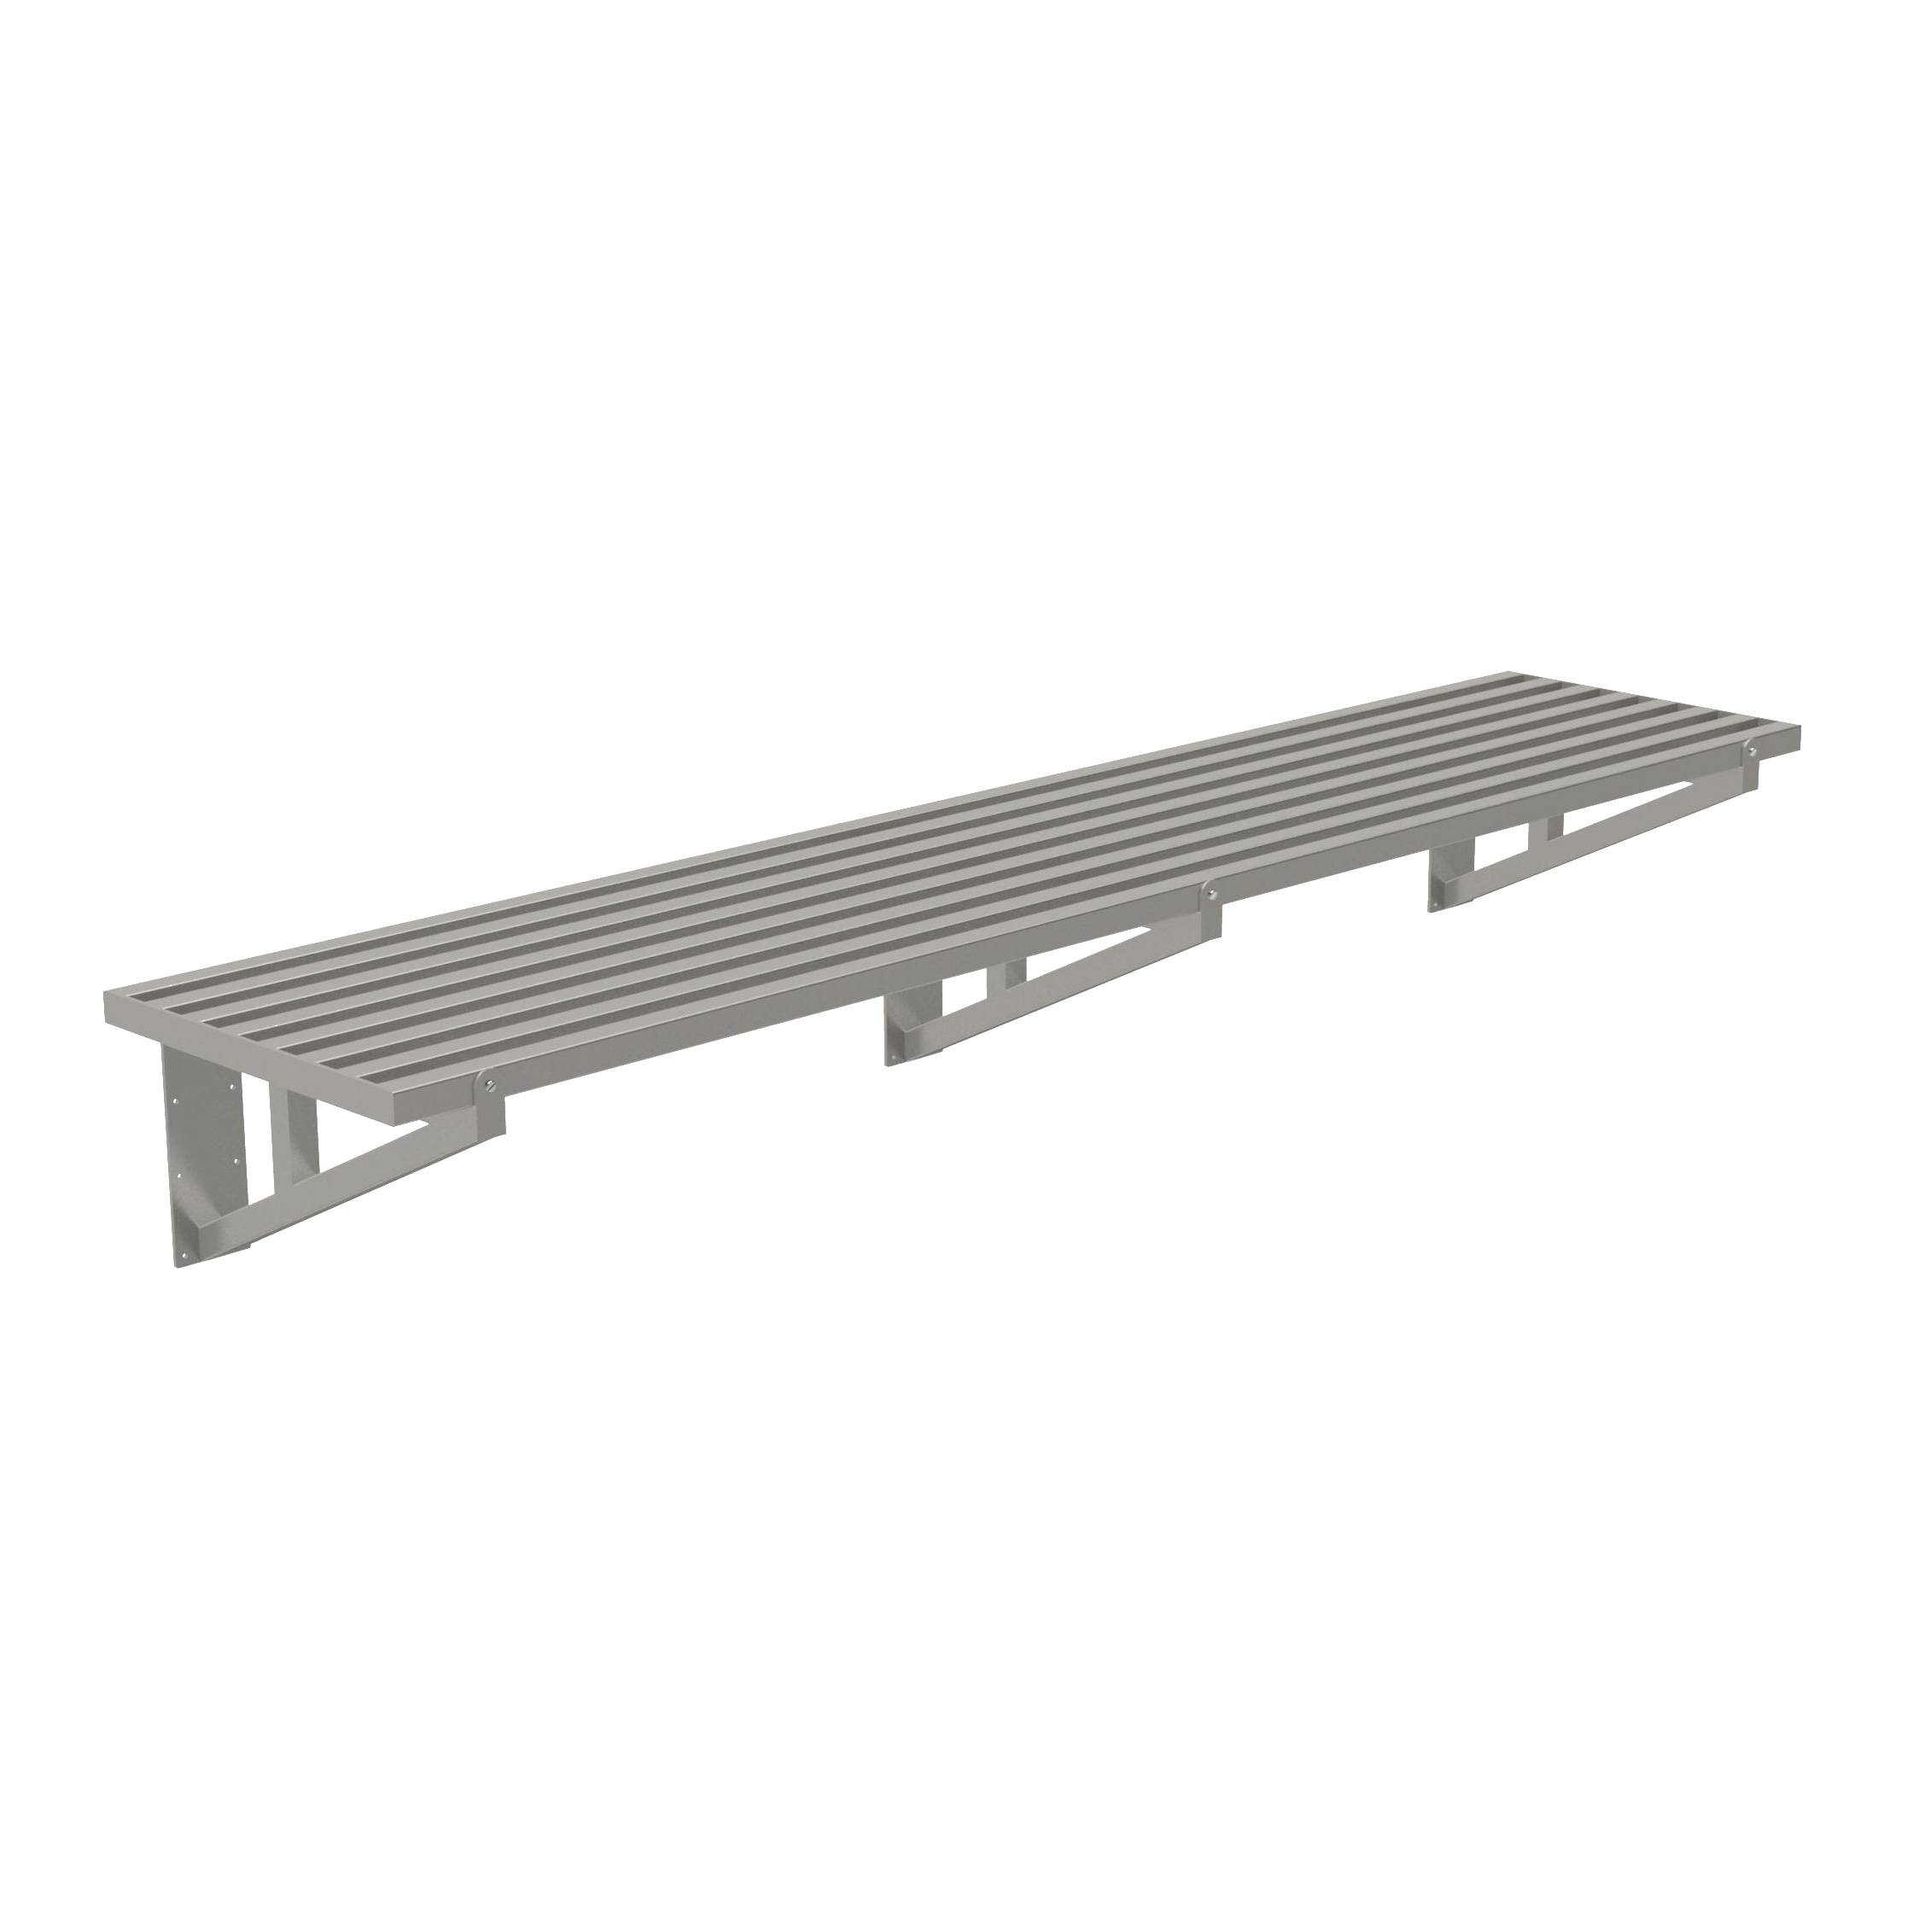 Advance Tabco DT21-10 shelving, wall mounted